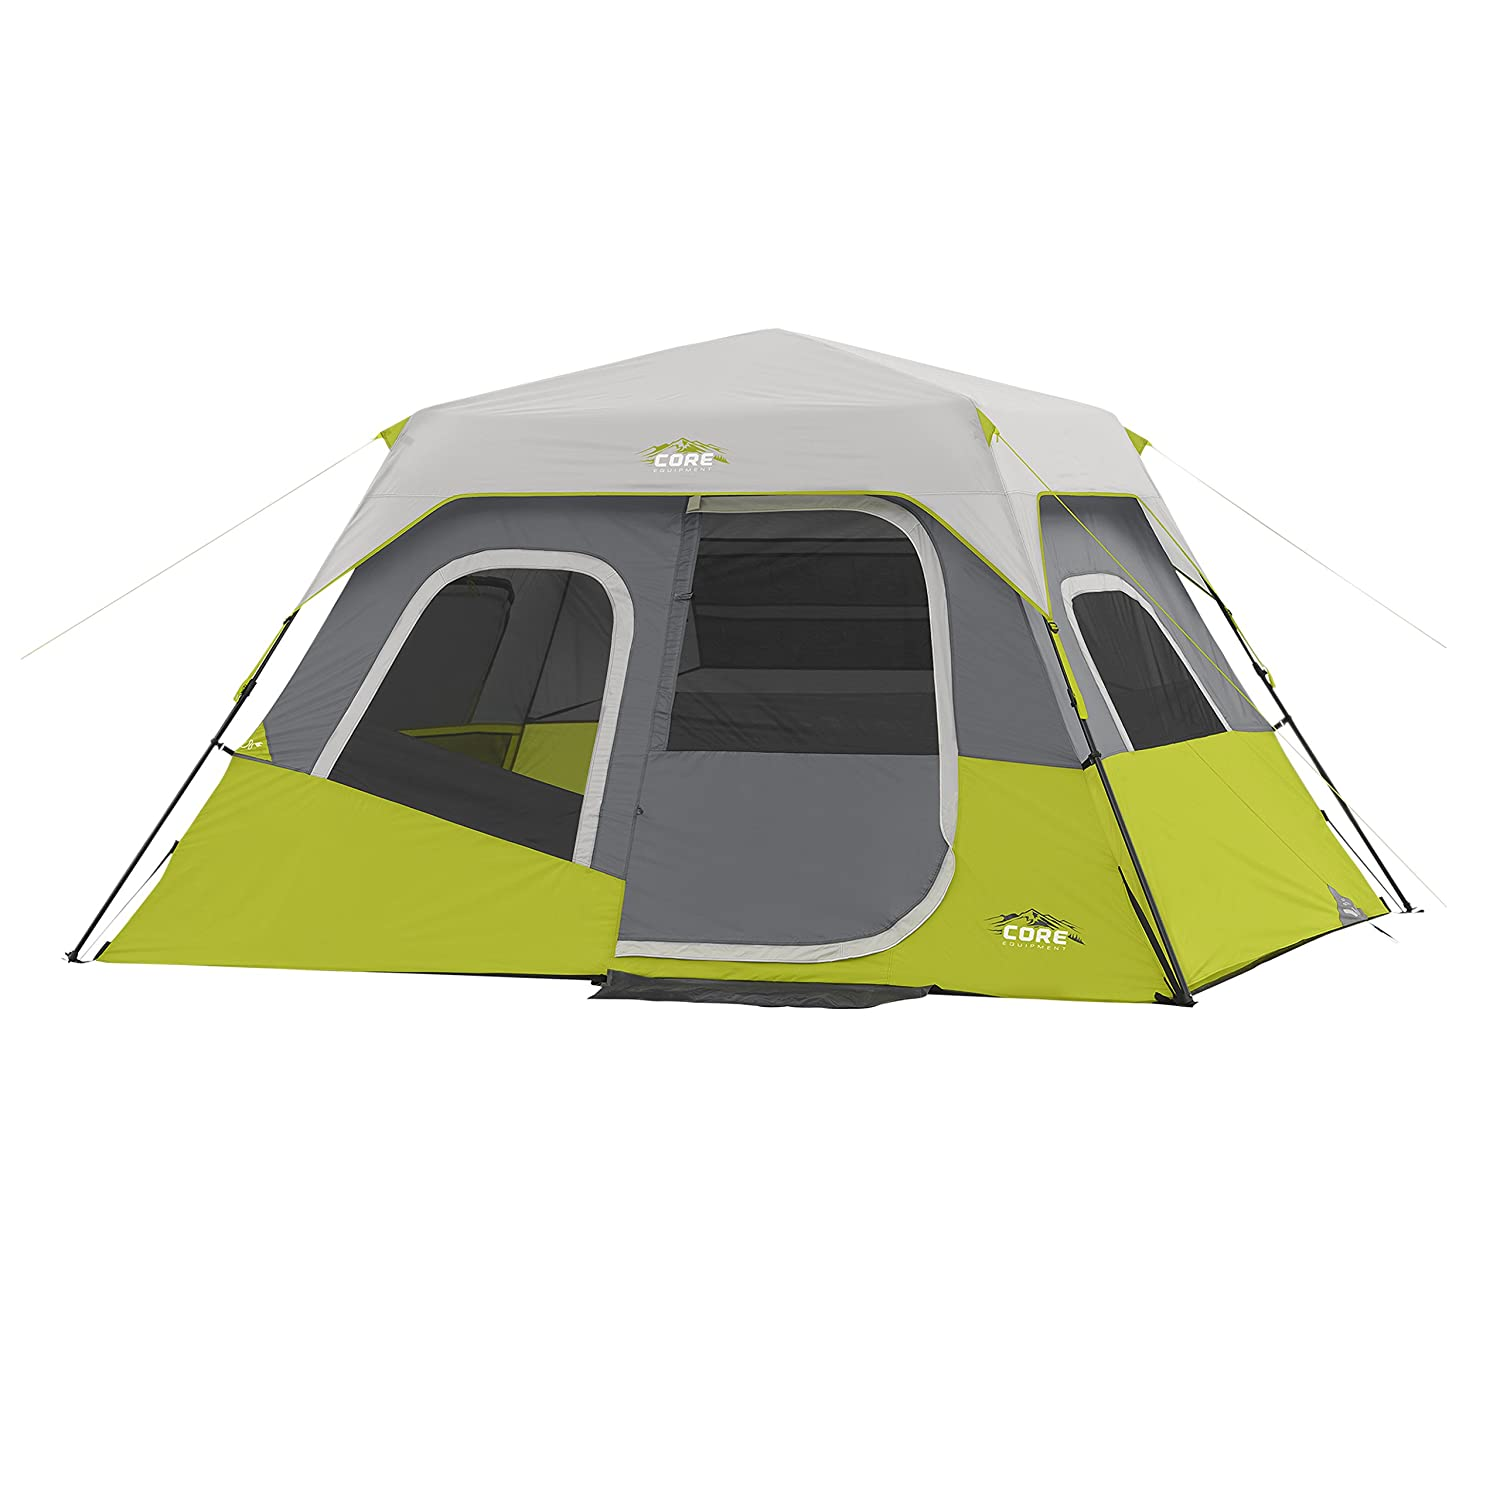 CORE 6-Person Instant Cabin Tent